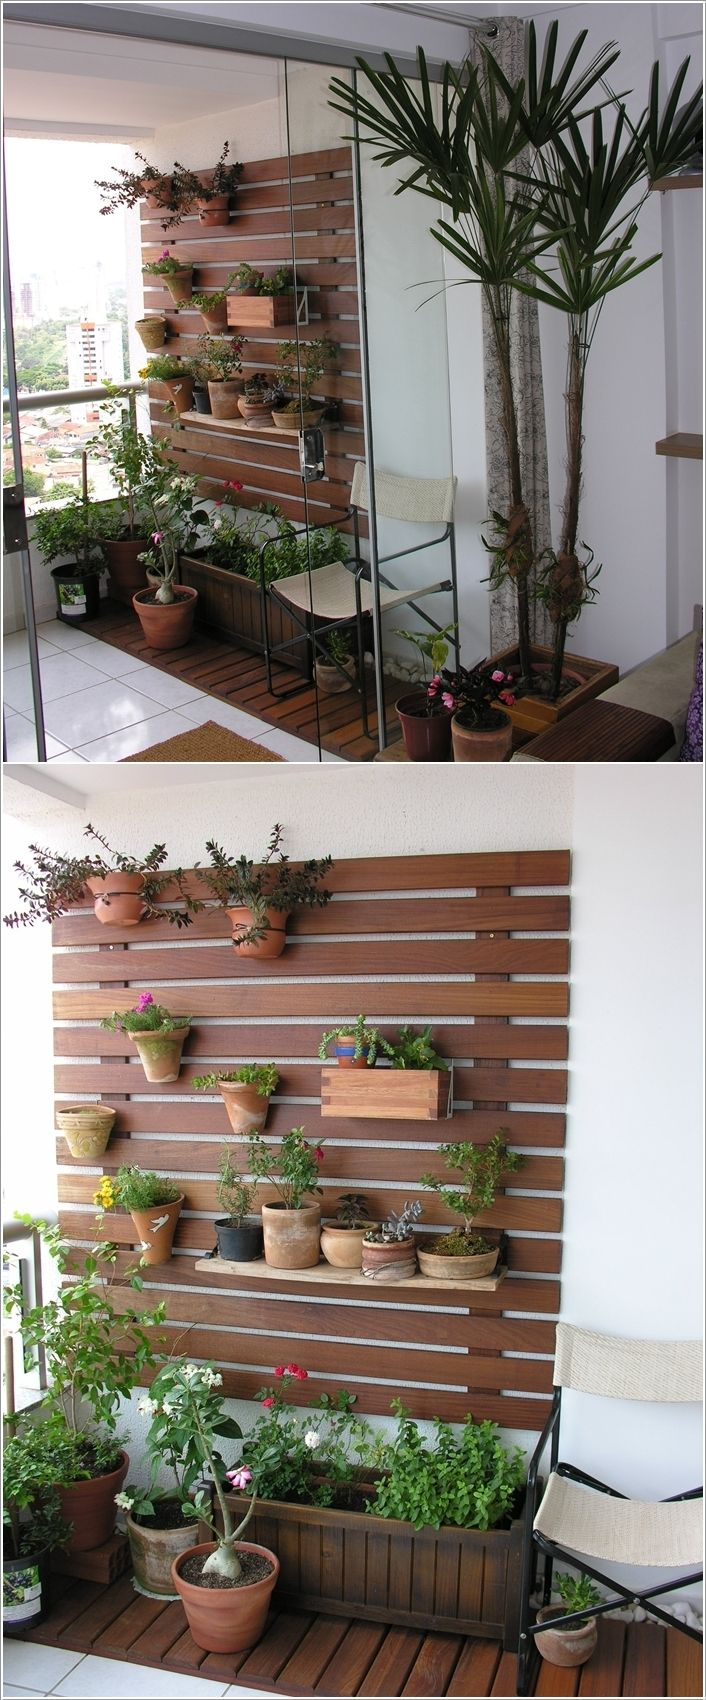 10 Awesome Balcony Wall Decor Ideas For Your Home Wall Garden